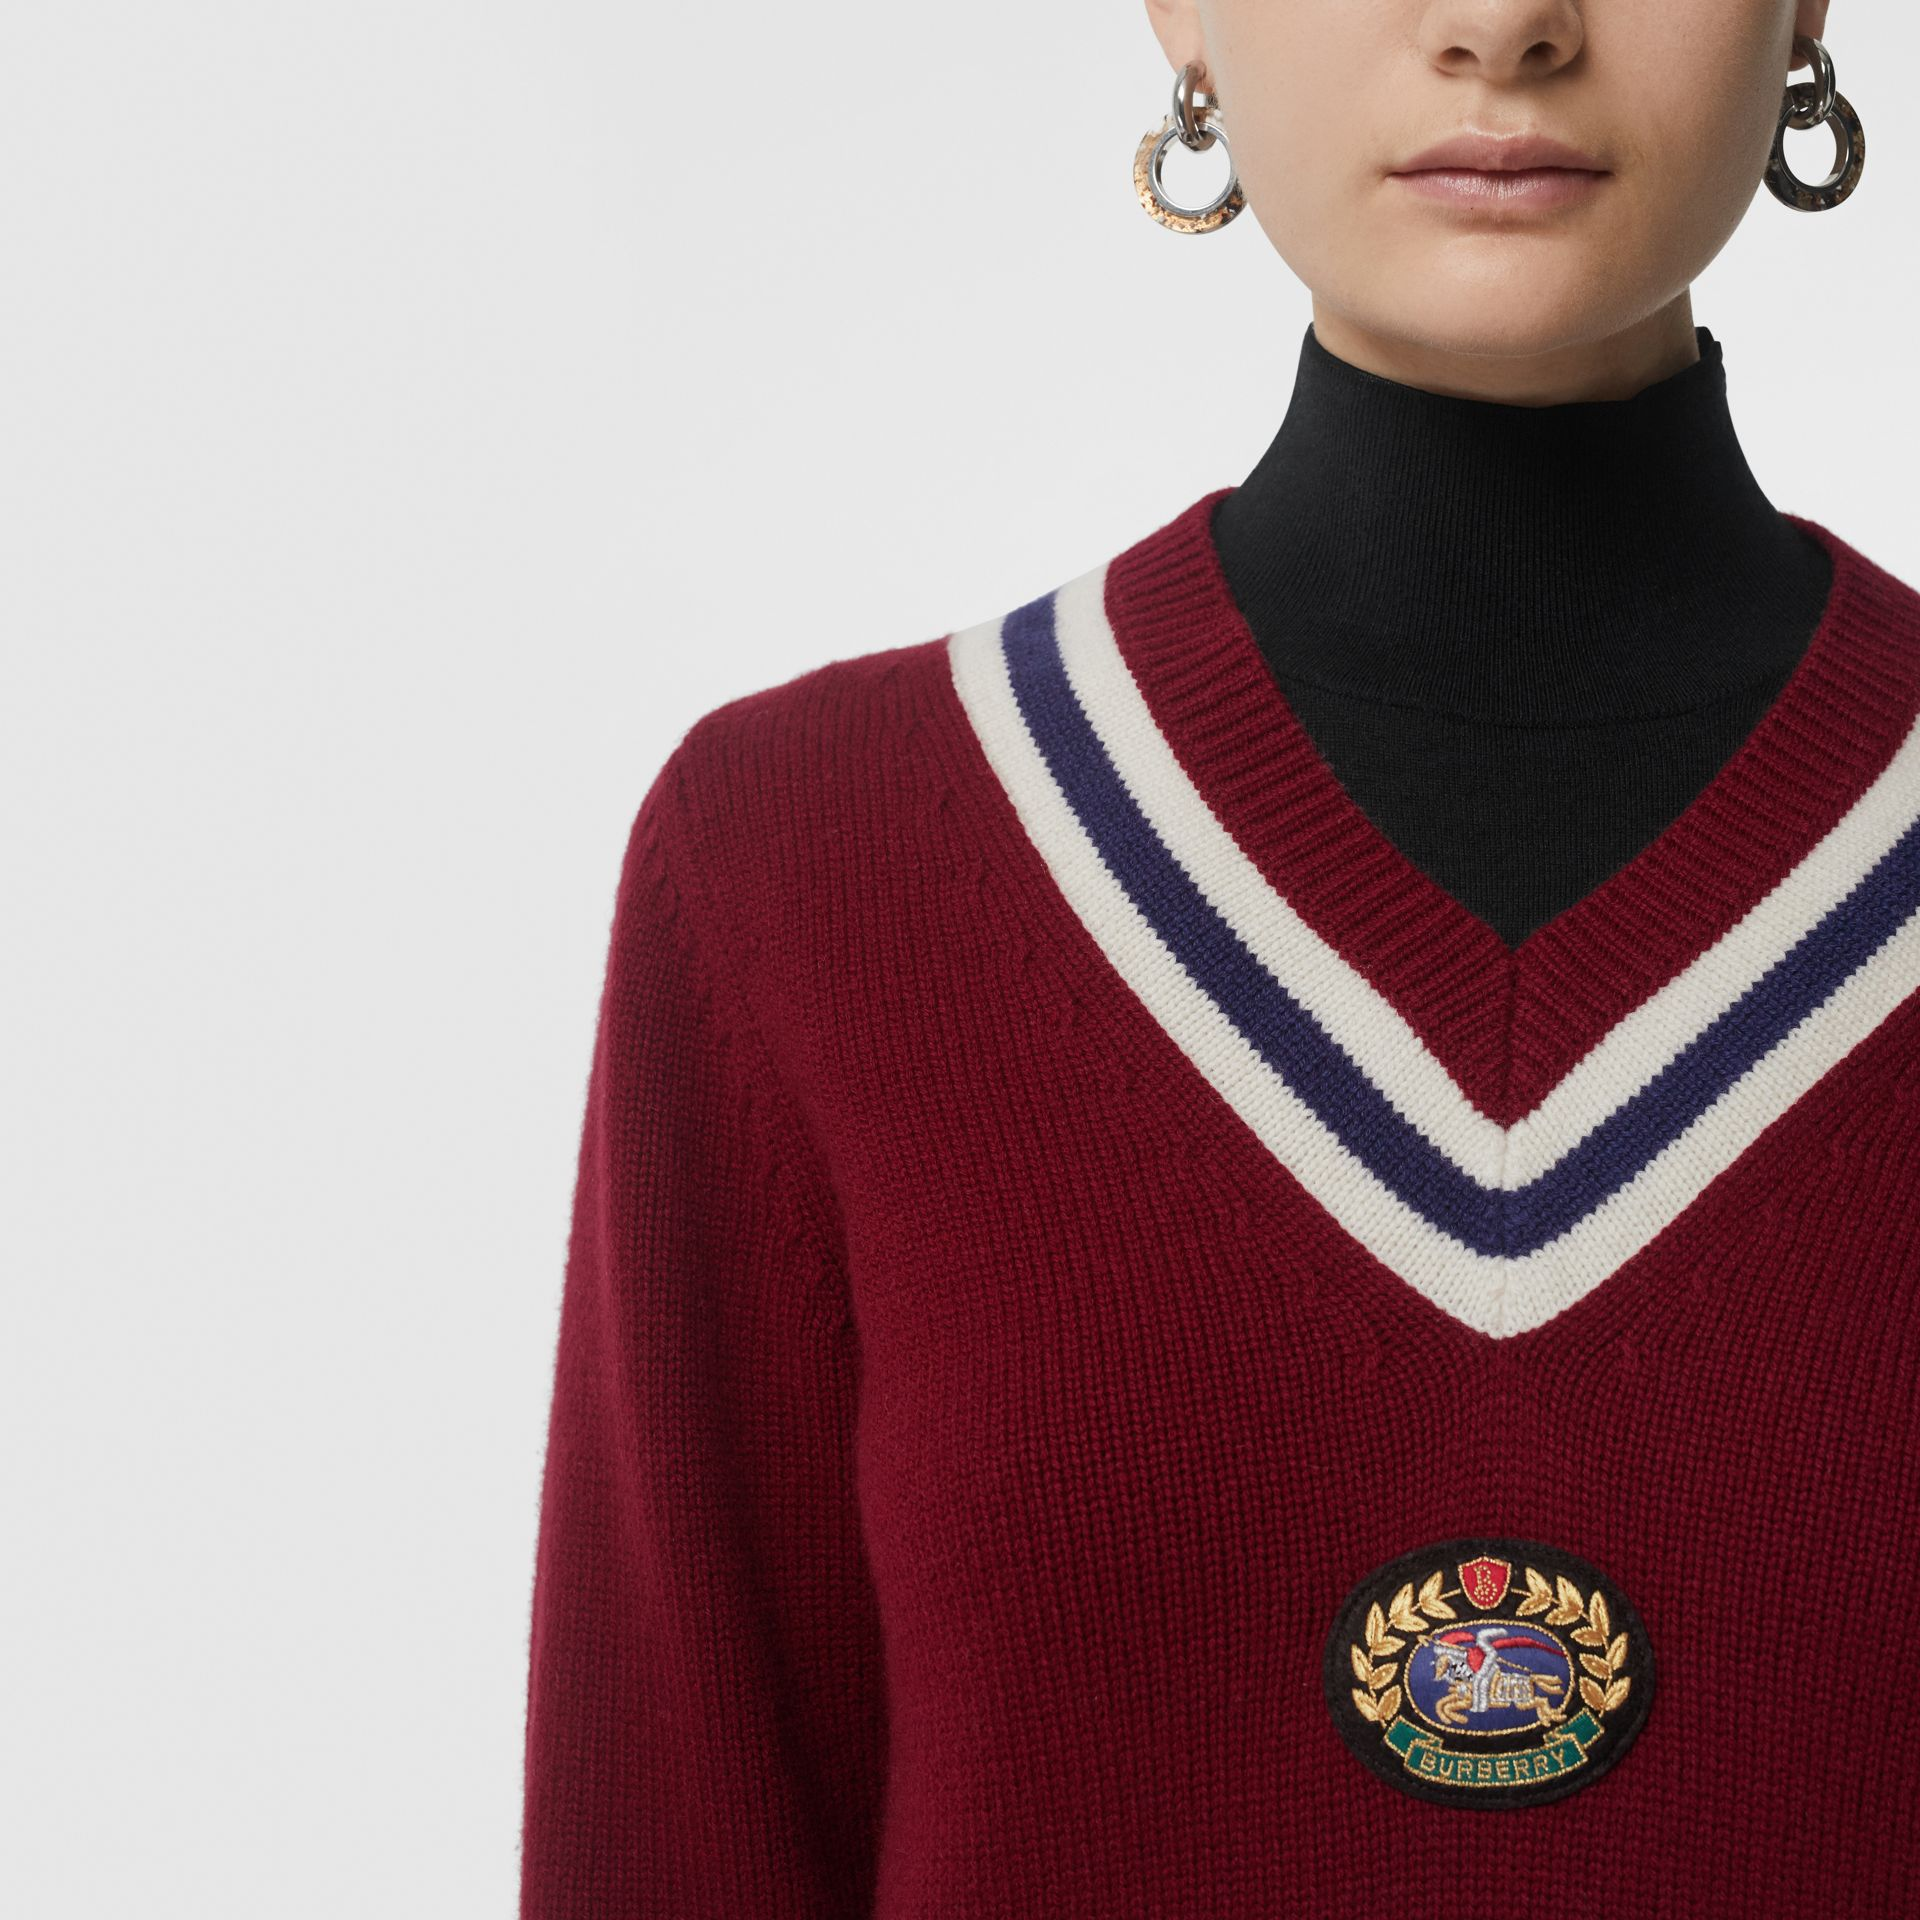 Embroidered Crest Wool Cashmere Sweater in Burgundy - Women | Burberry - gallery image 5